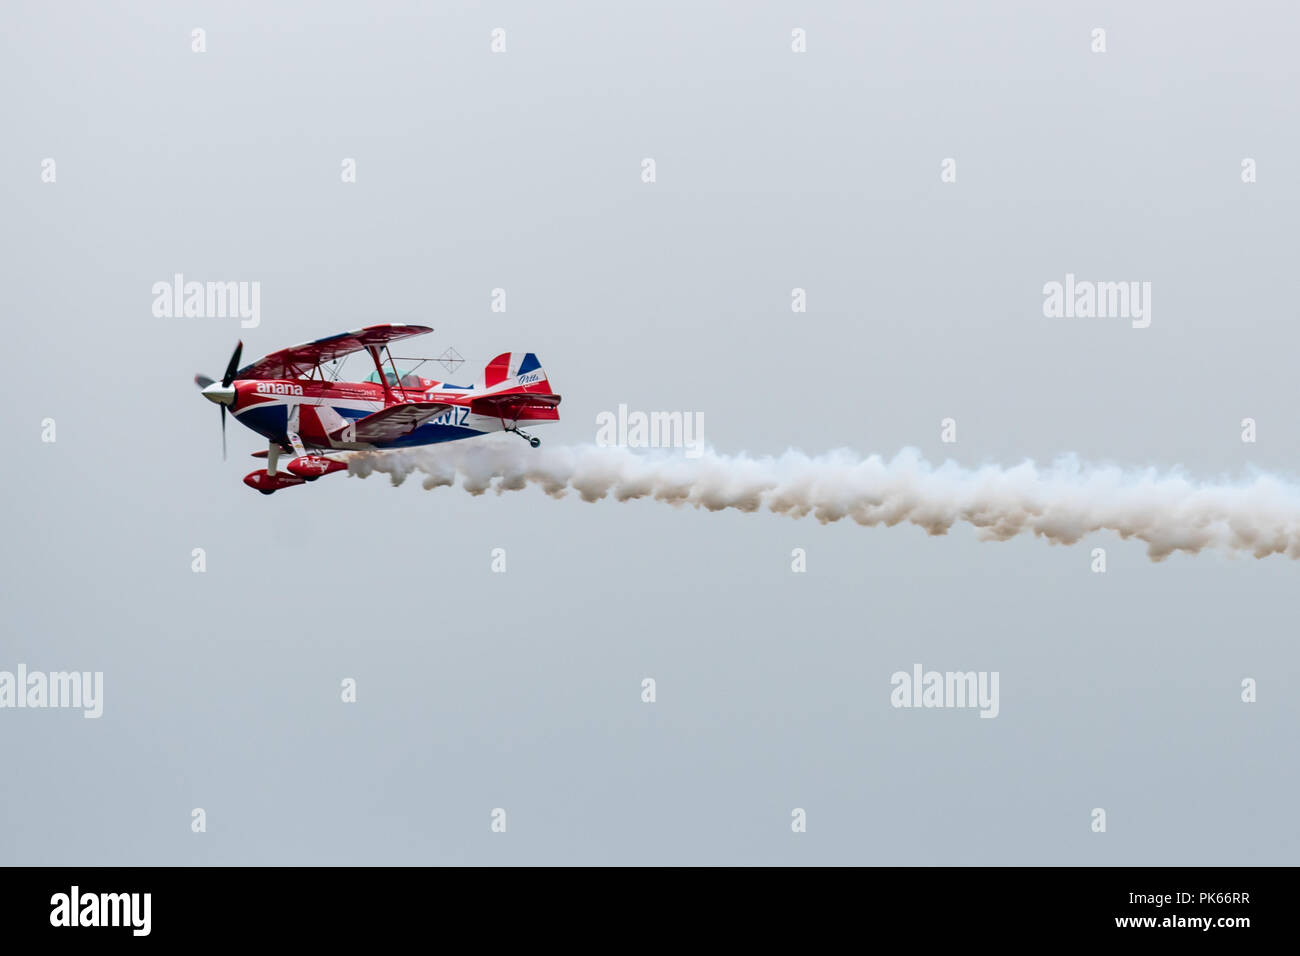 A rare moment of level flight for Rich Goodwin during his aerobatic display in his highly modified Pitts Special S2S Biplane. - Stock Image